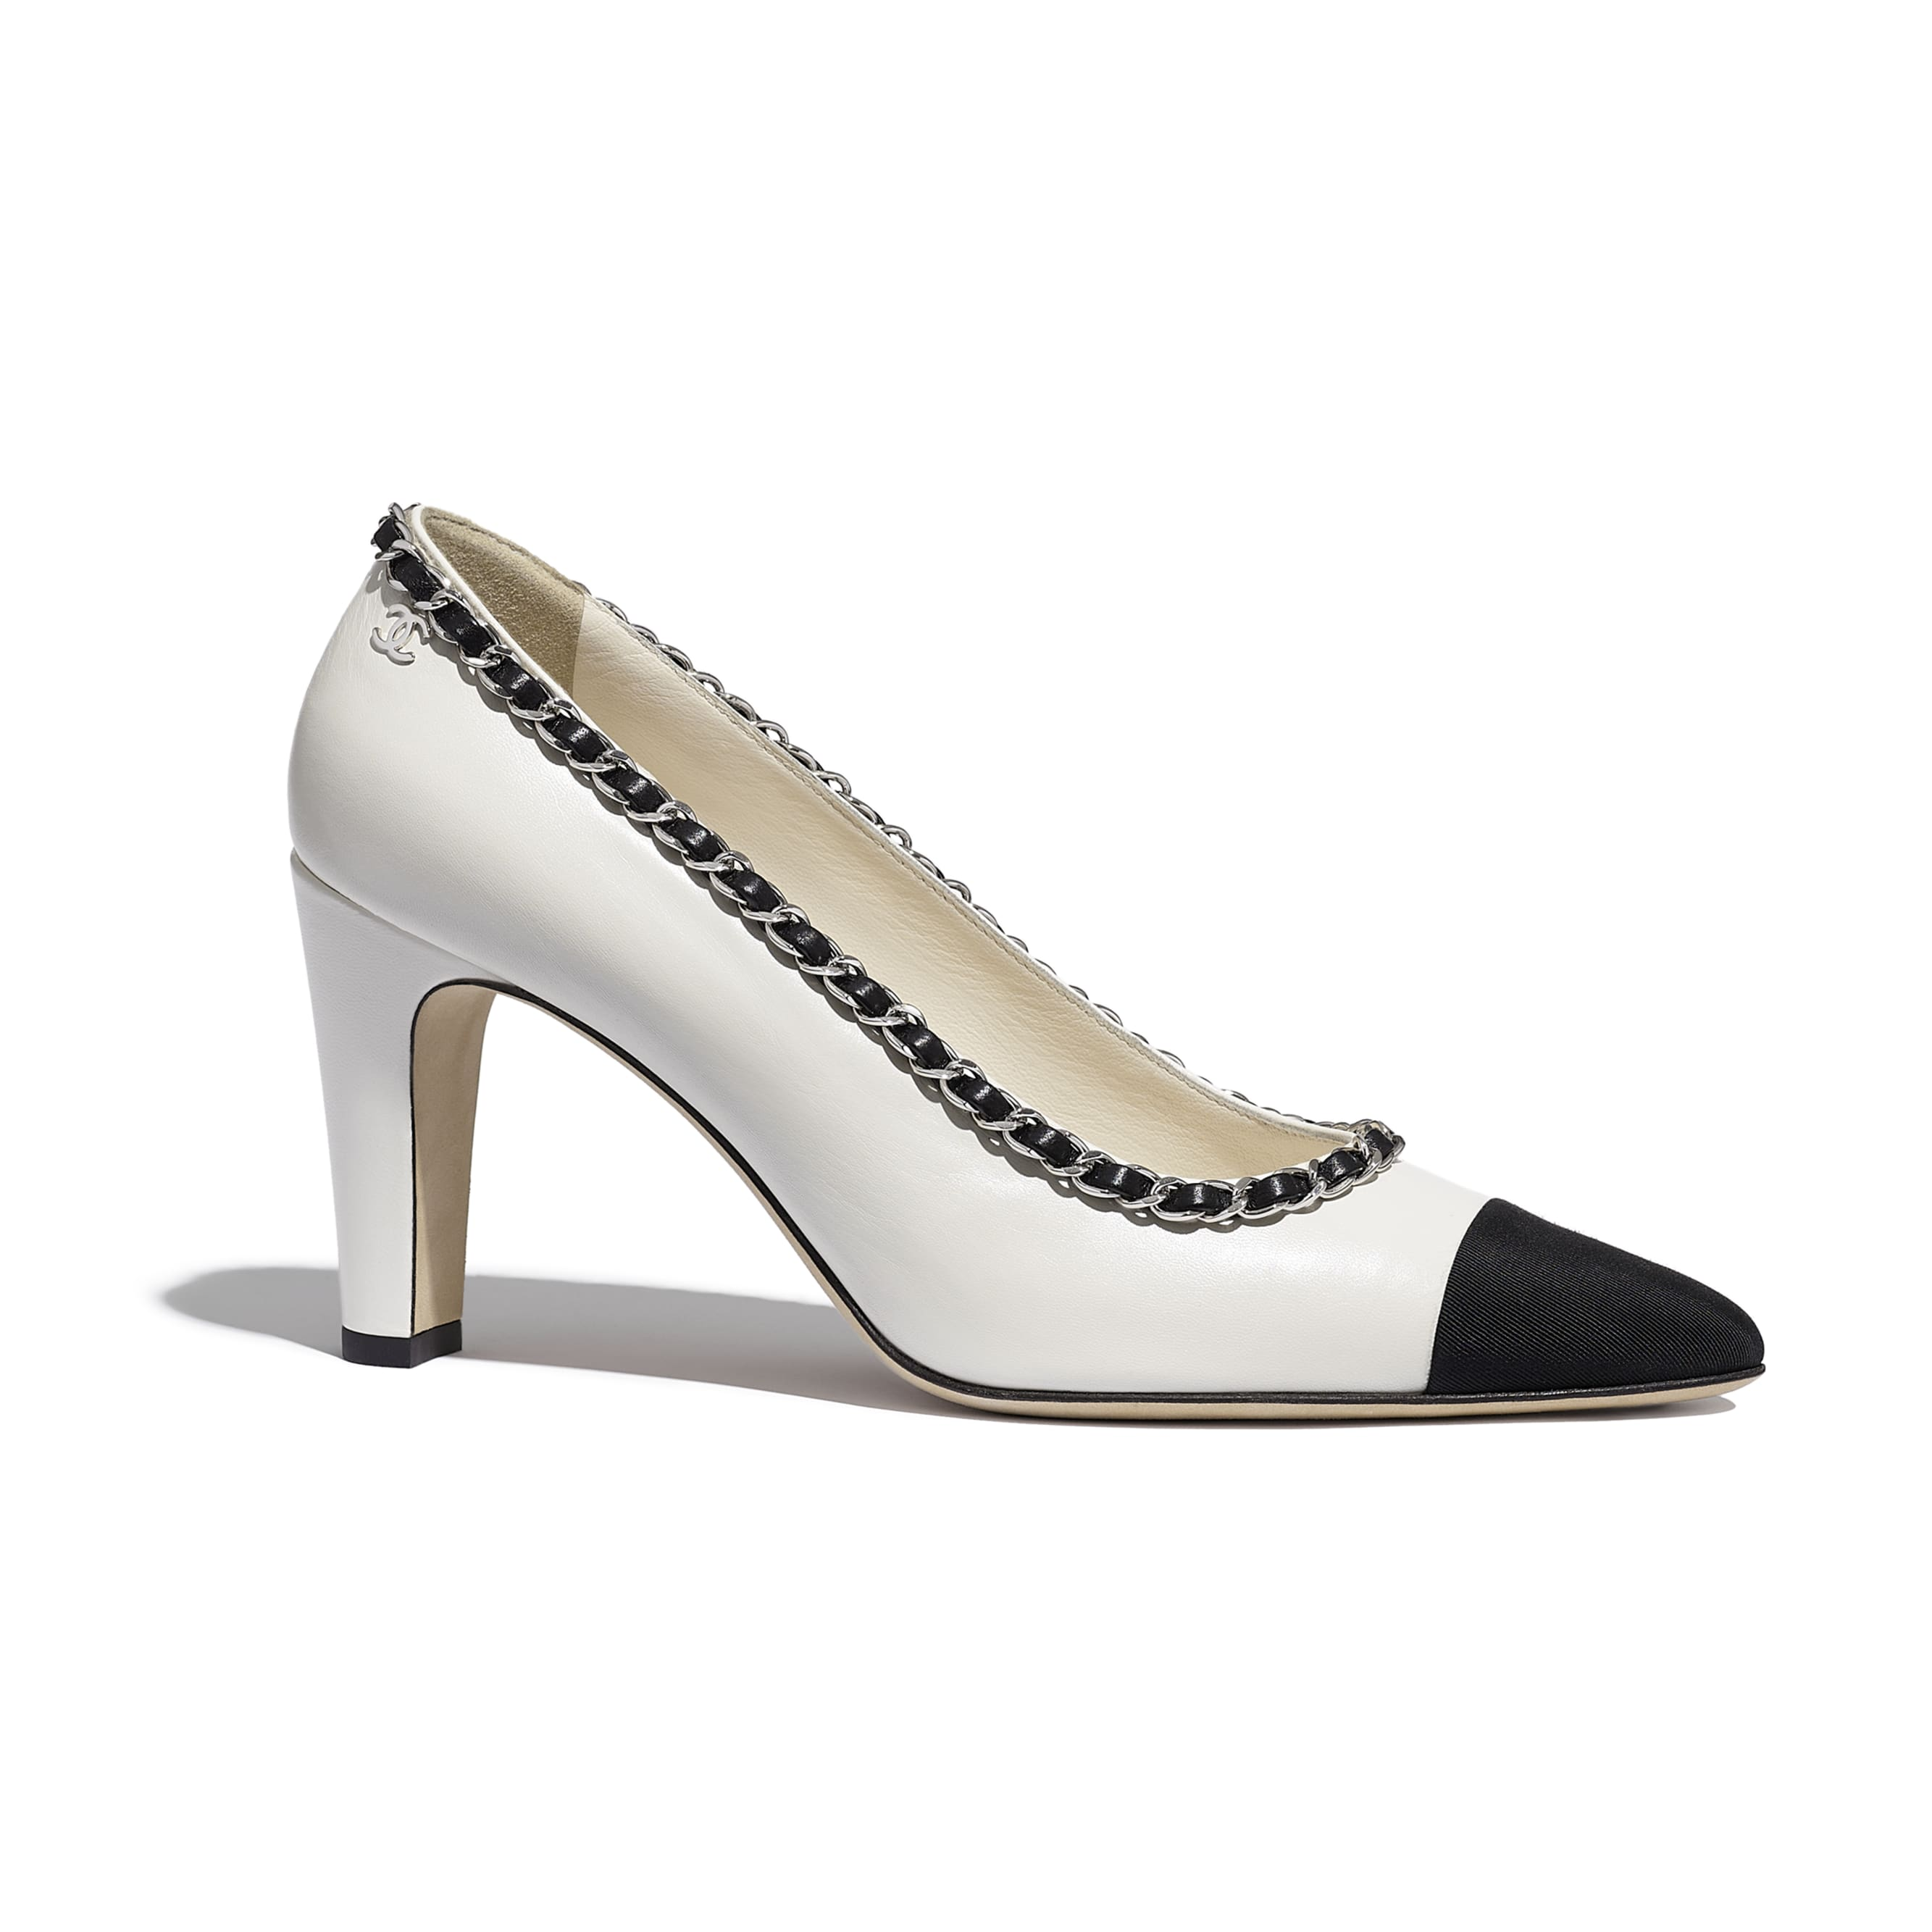 Pumps - Ivory & Black - Lambskin - CHANEL - Default view - see standard sized version